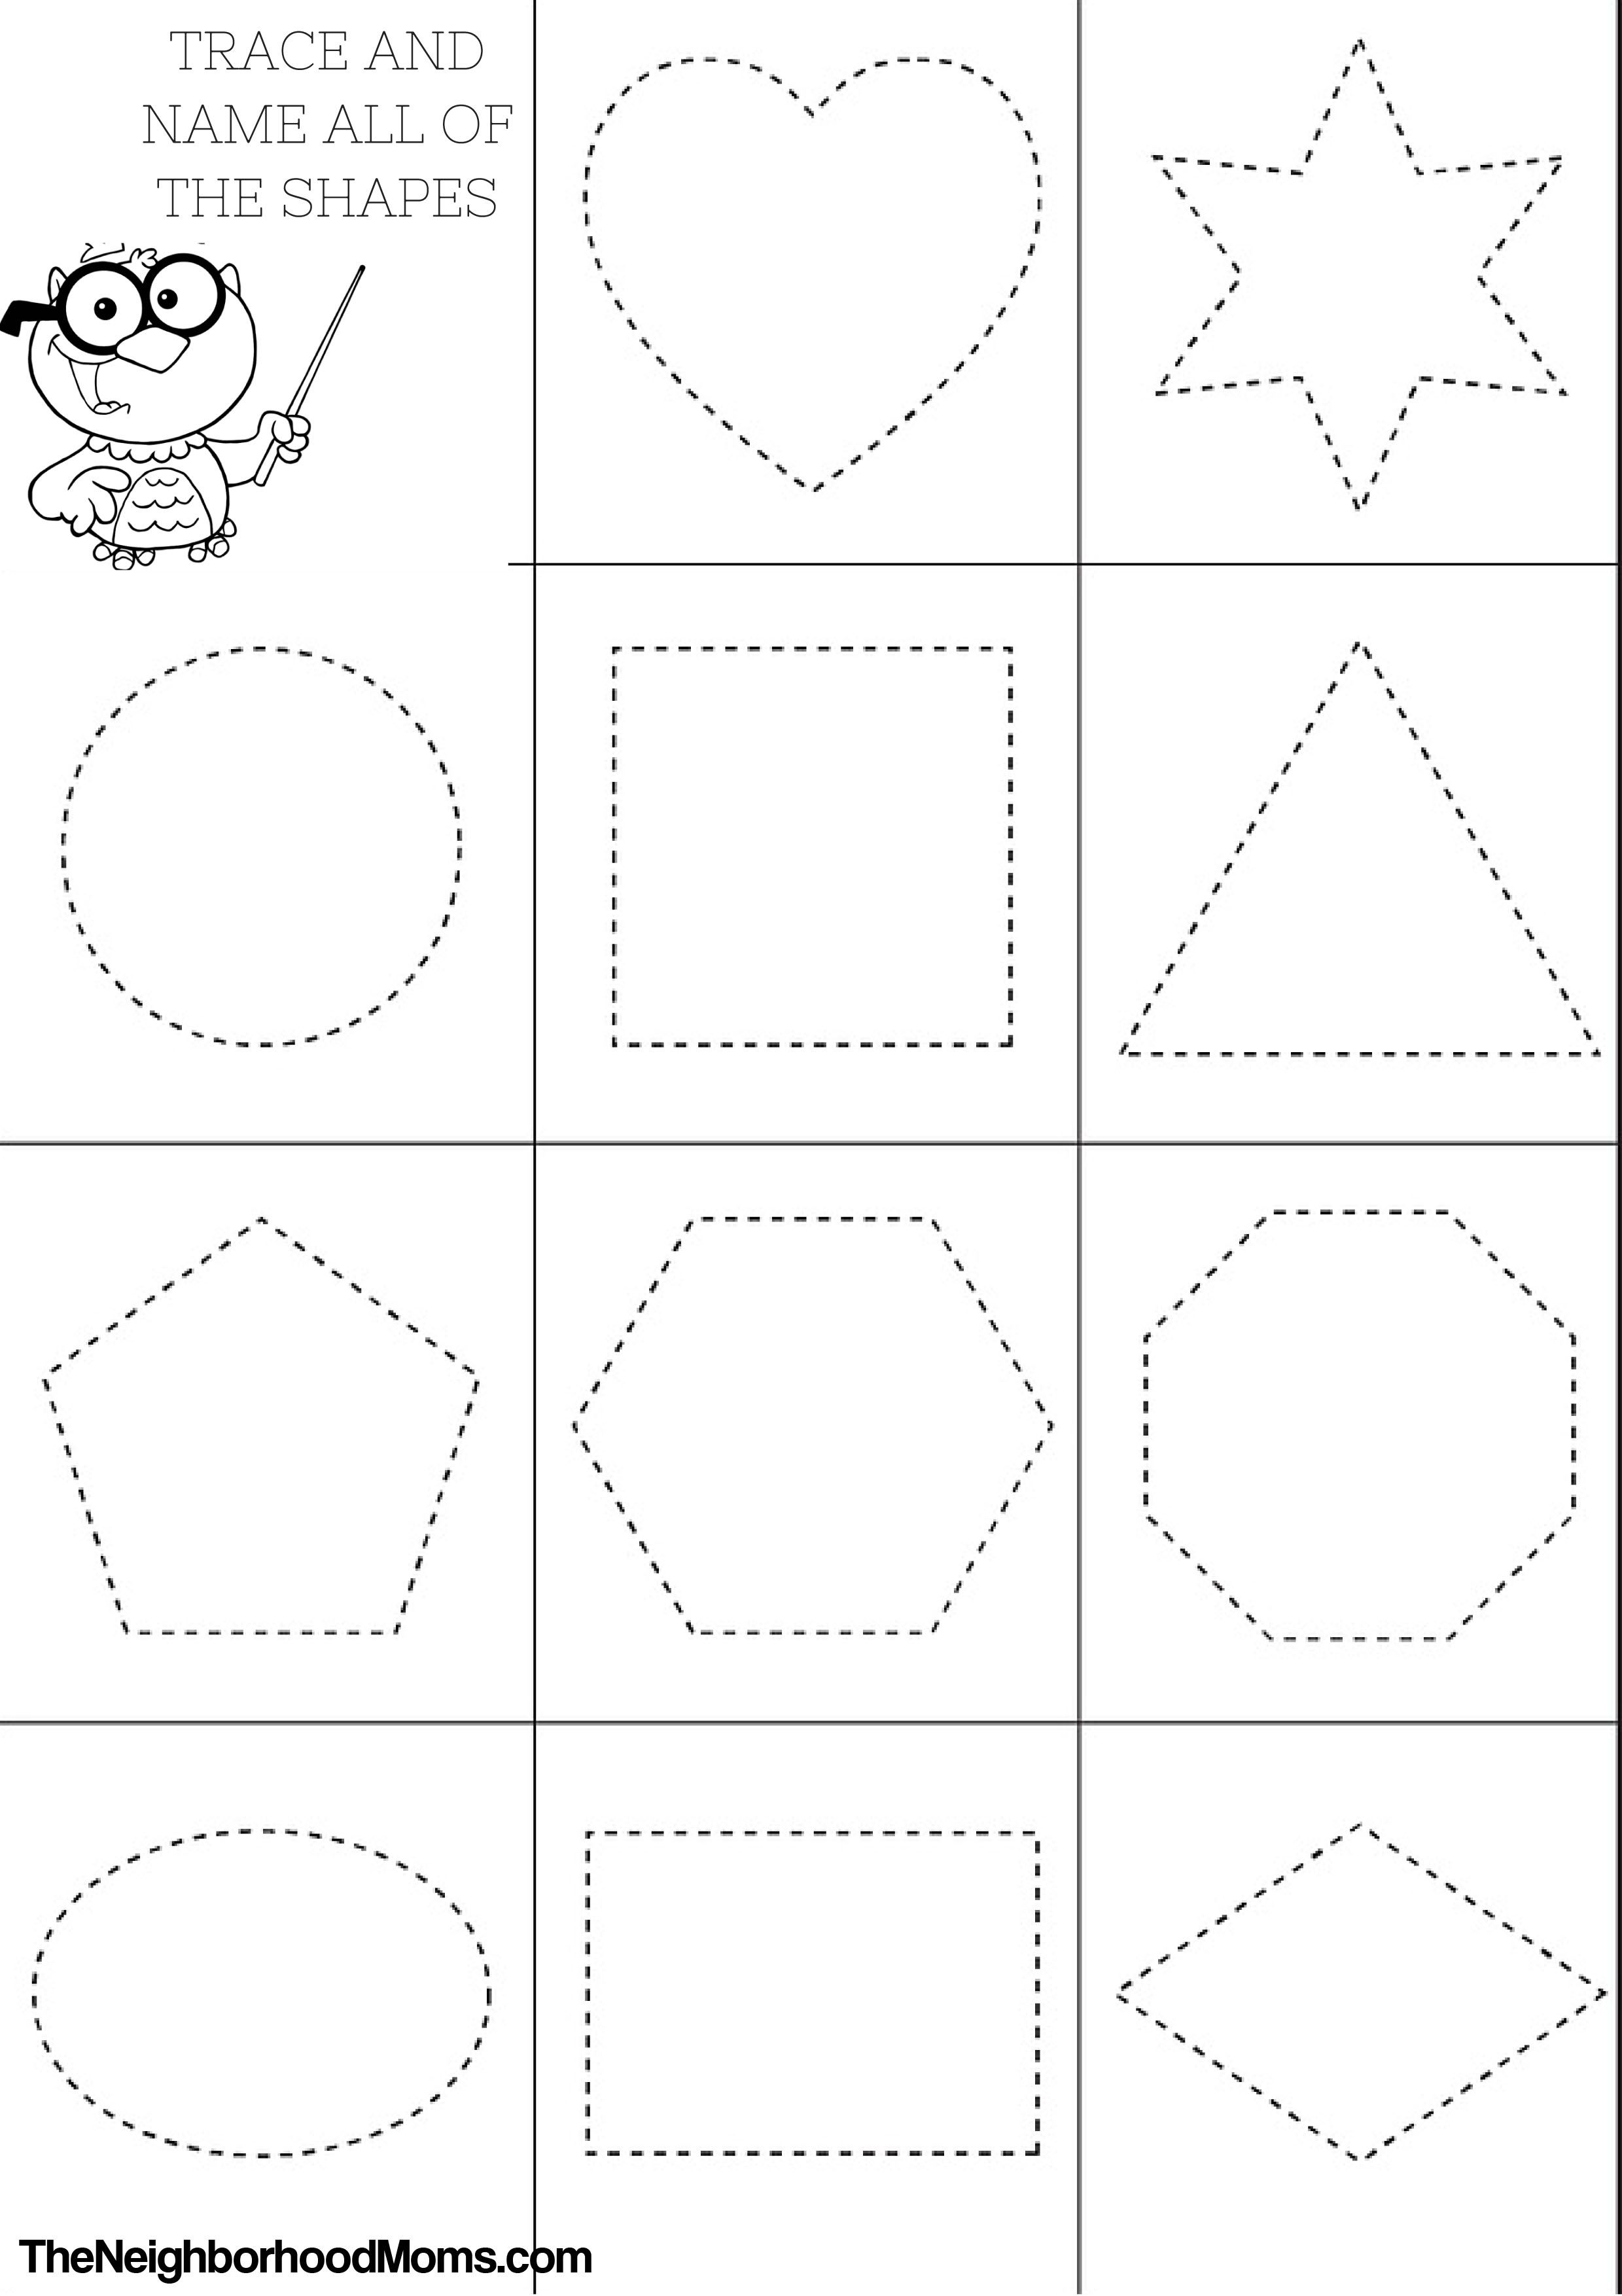 Shapes Coloring Pages Printable | Pretty Printables | Pinterest ...